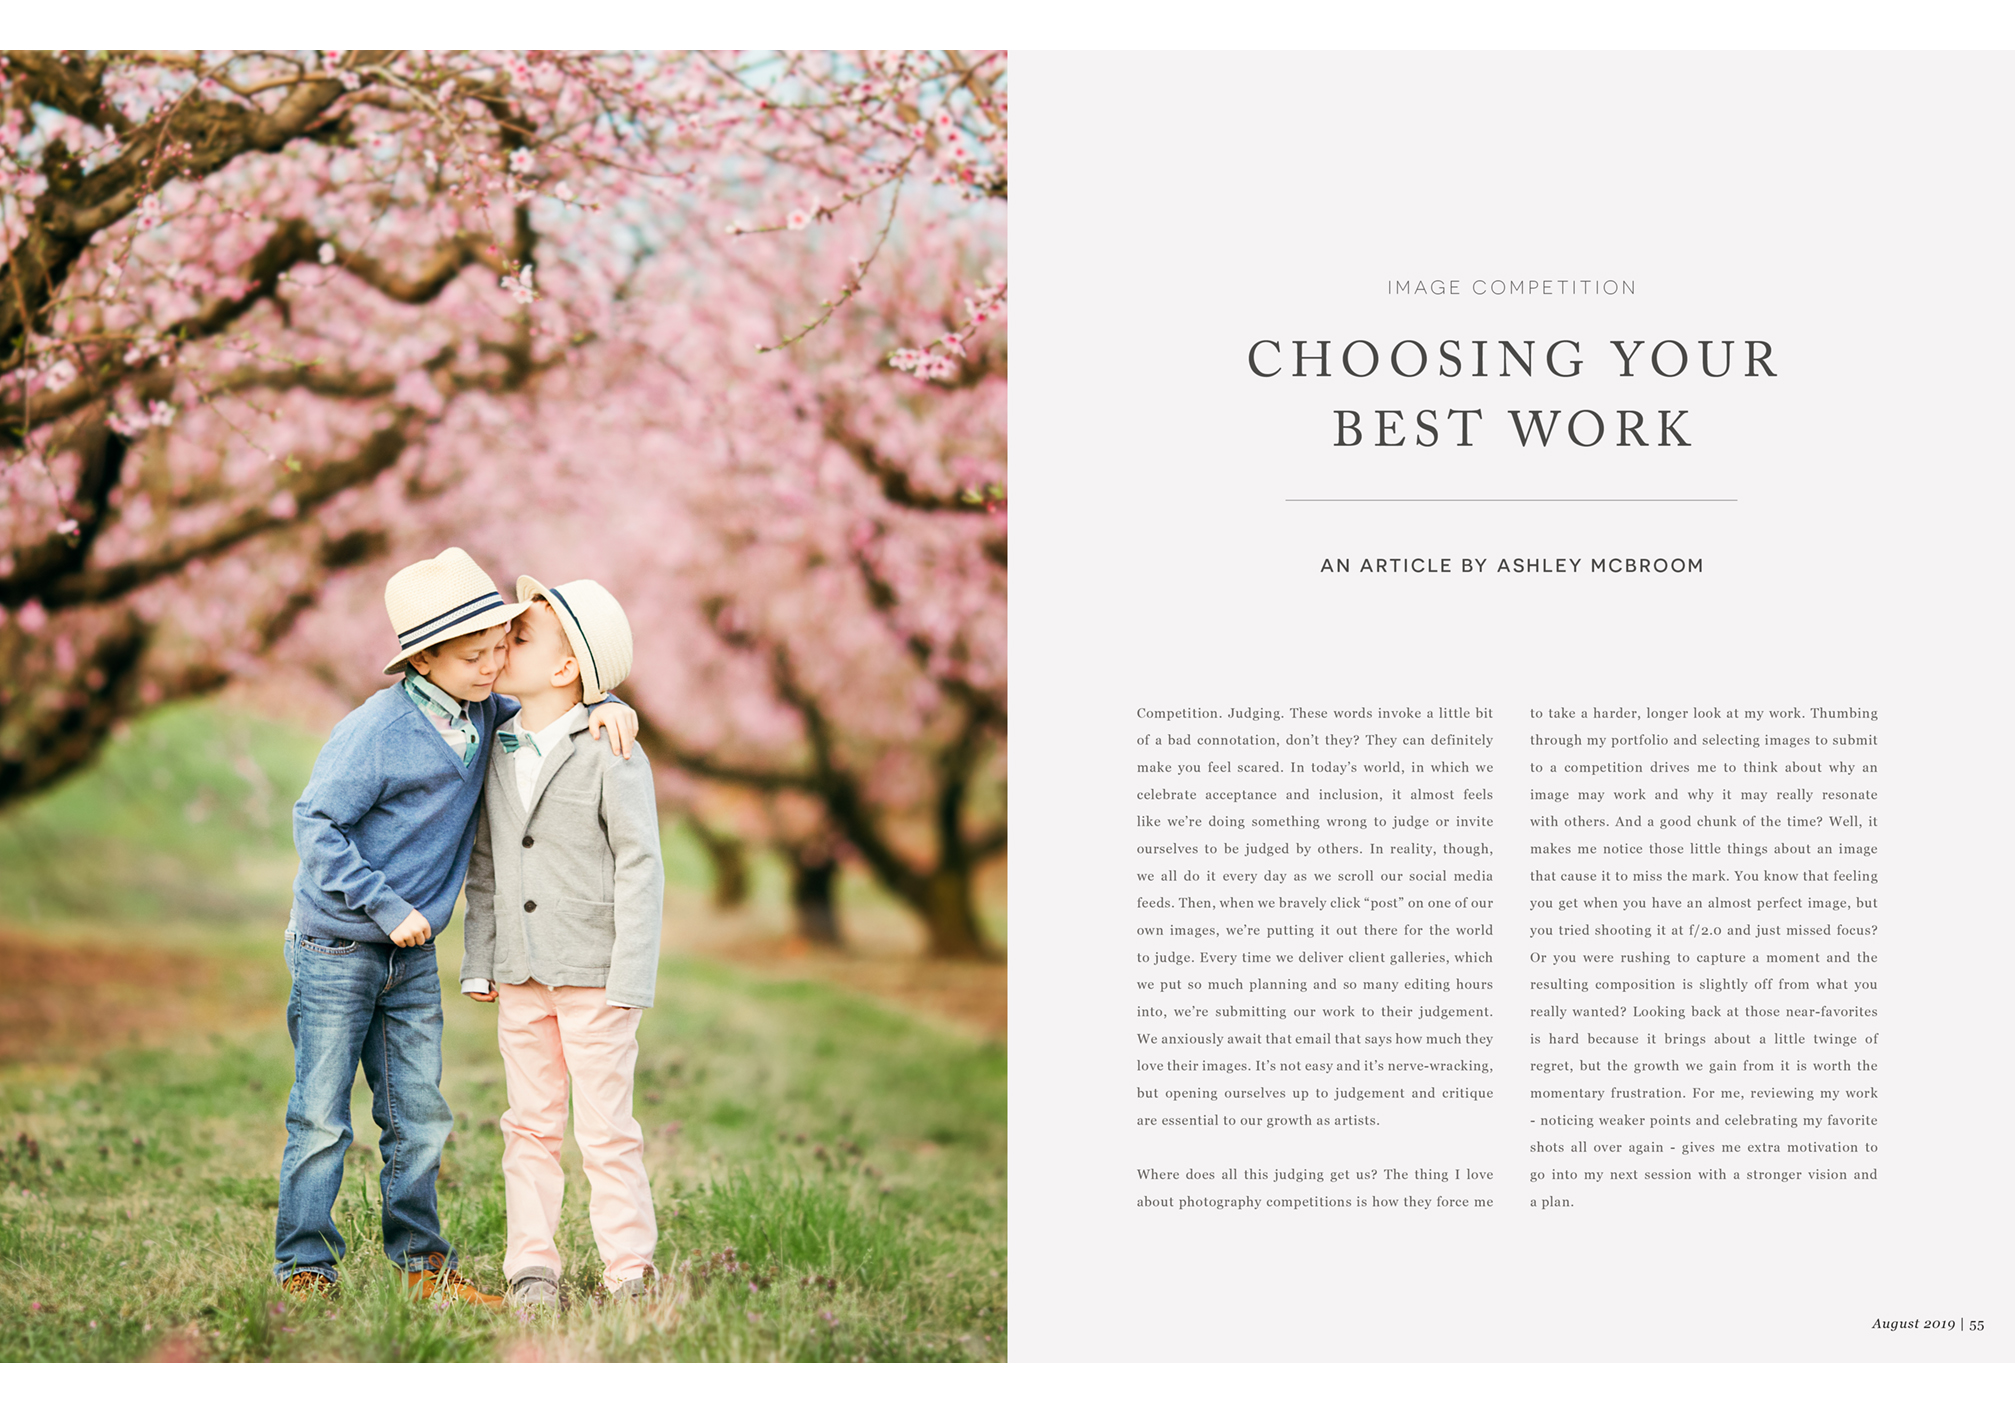 Inspired Magazine, Image Competition, Choosing Your Best Work, An Article by Ashley McBroom